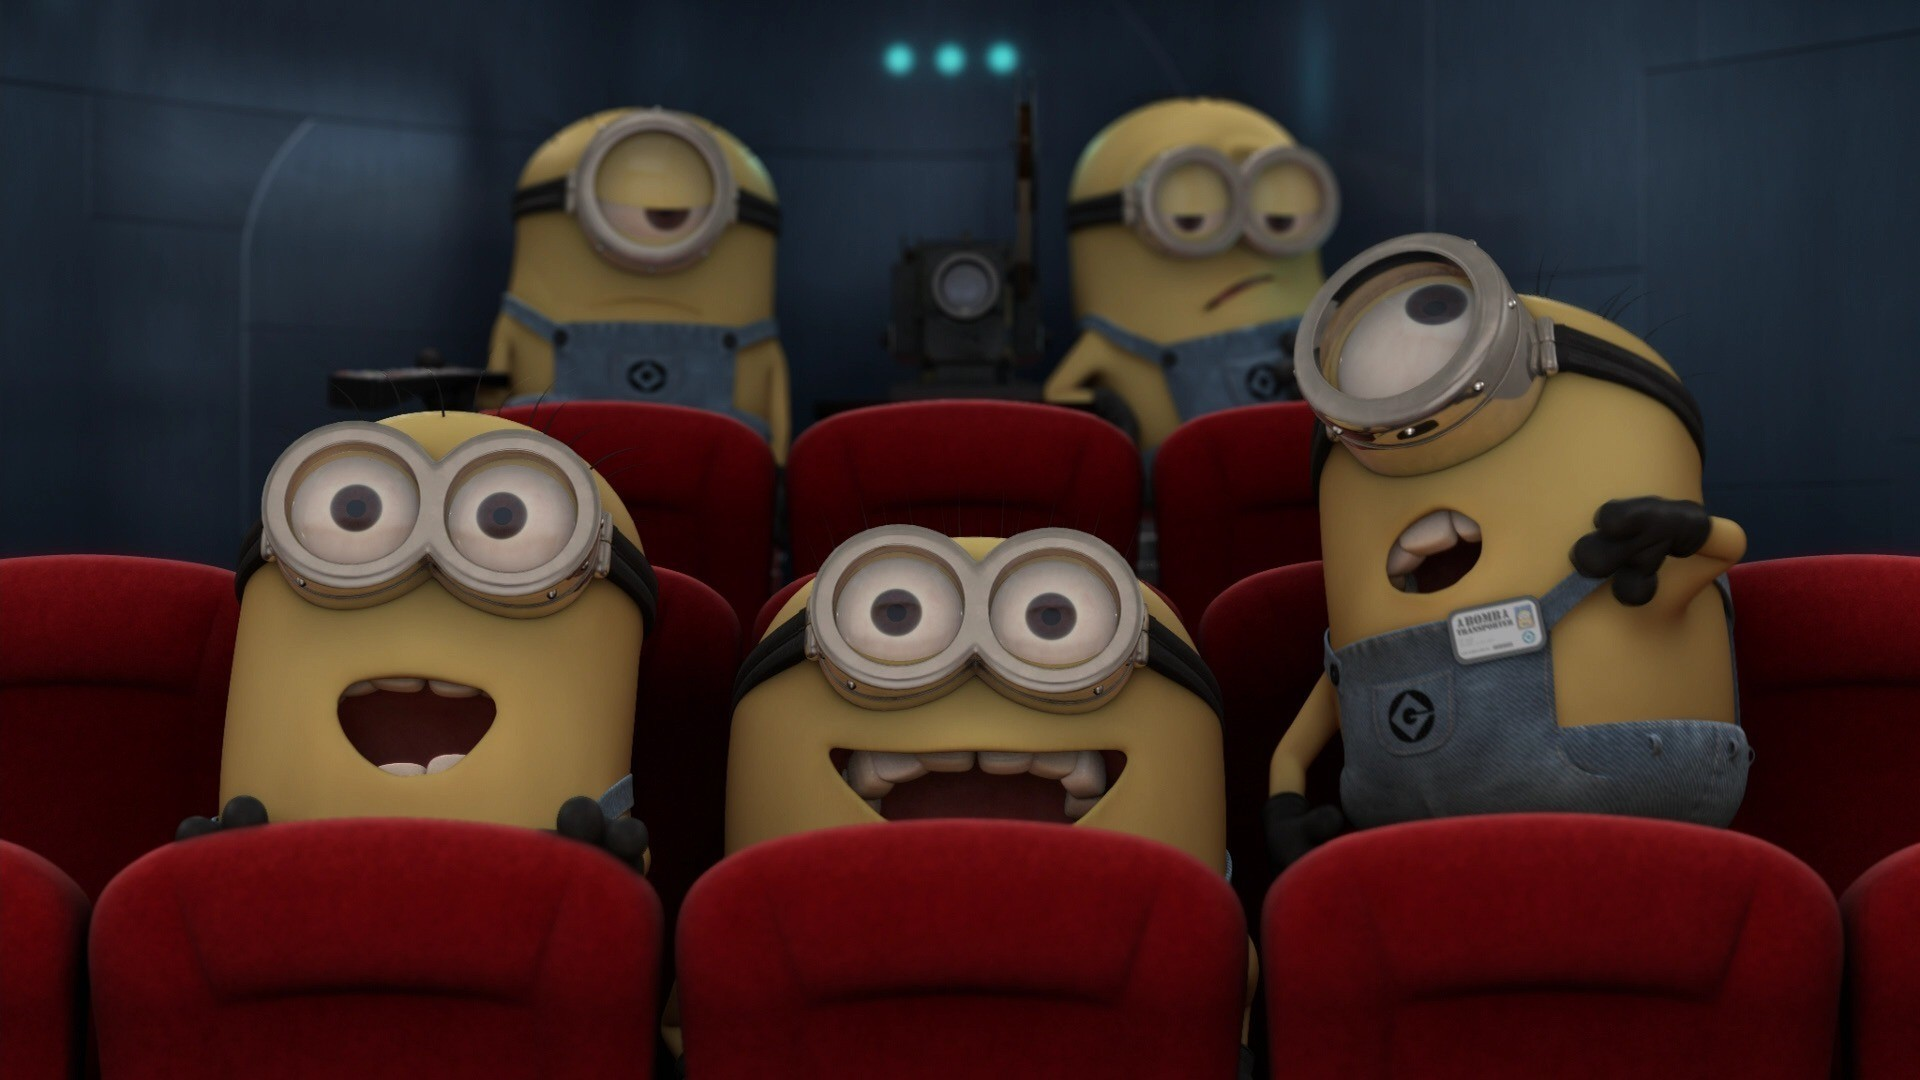 Download HD Minion Wallpapers for Mobile Phones Cute Collection Of Minions